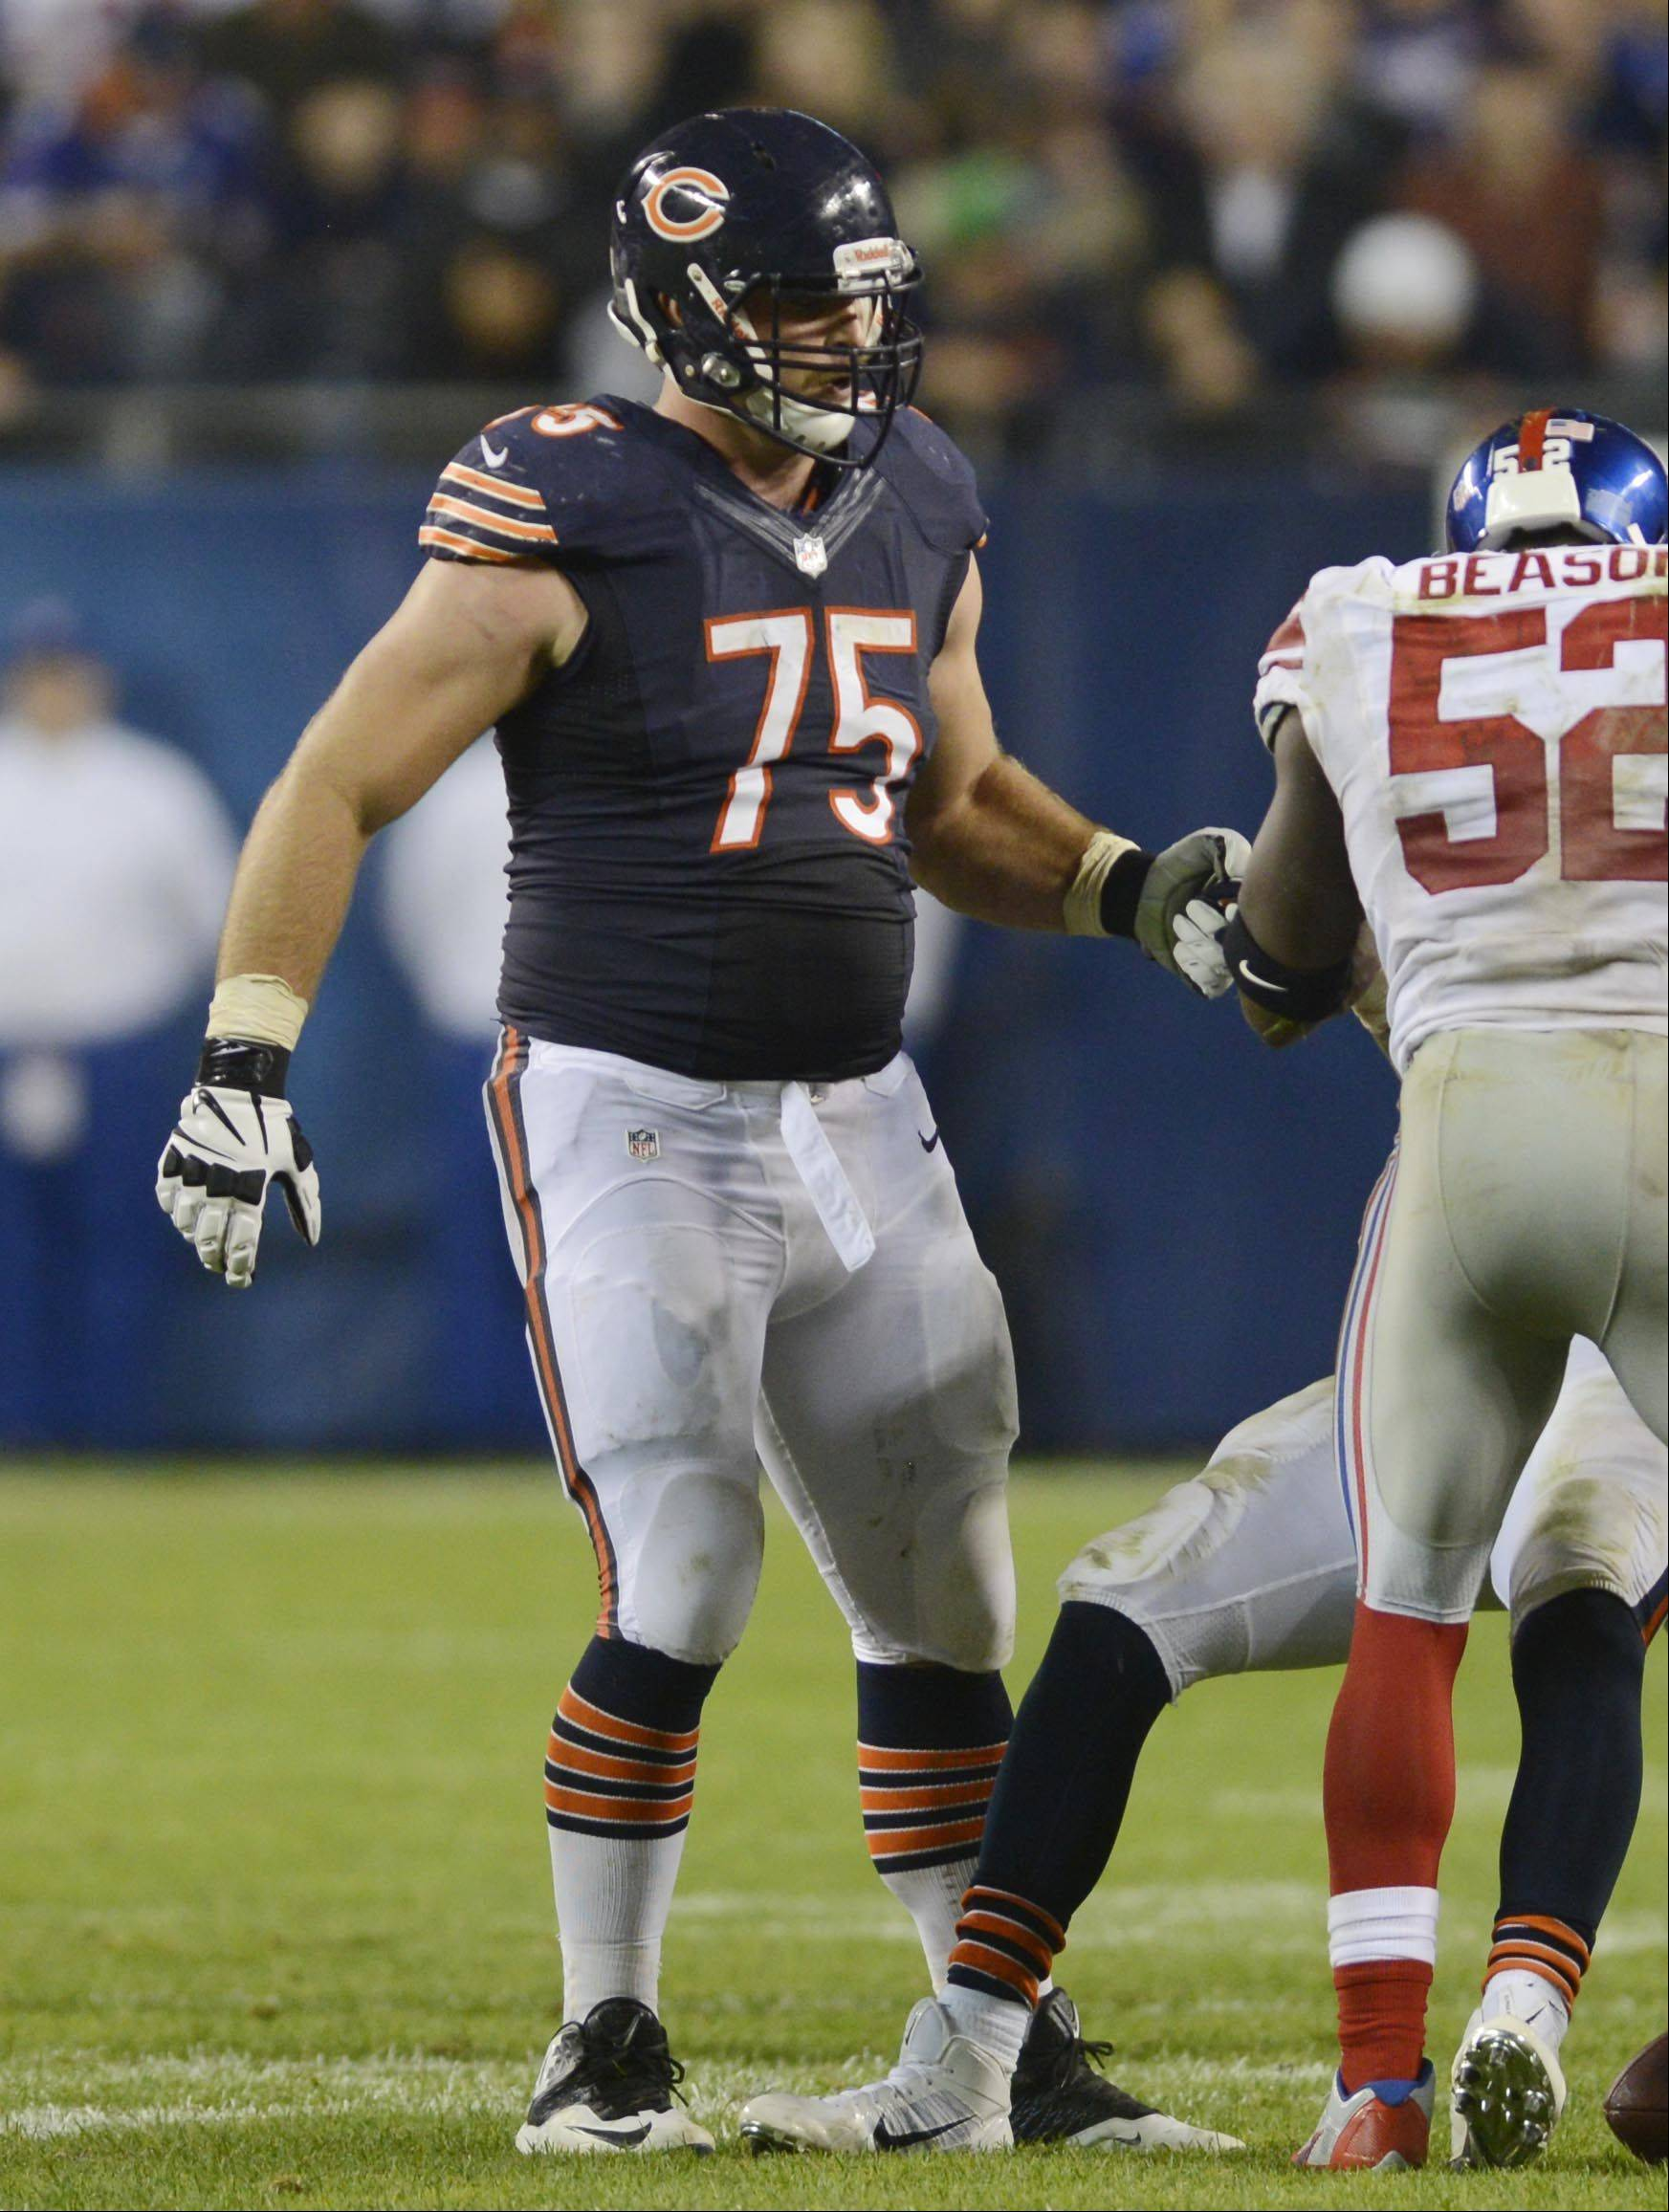 Rookie guard Kyle Long and the rest of the offensive line will have their hands full Sunday against the Ravens, who have arguably the best defense the Bears will face this season.